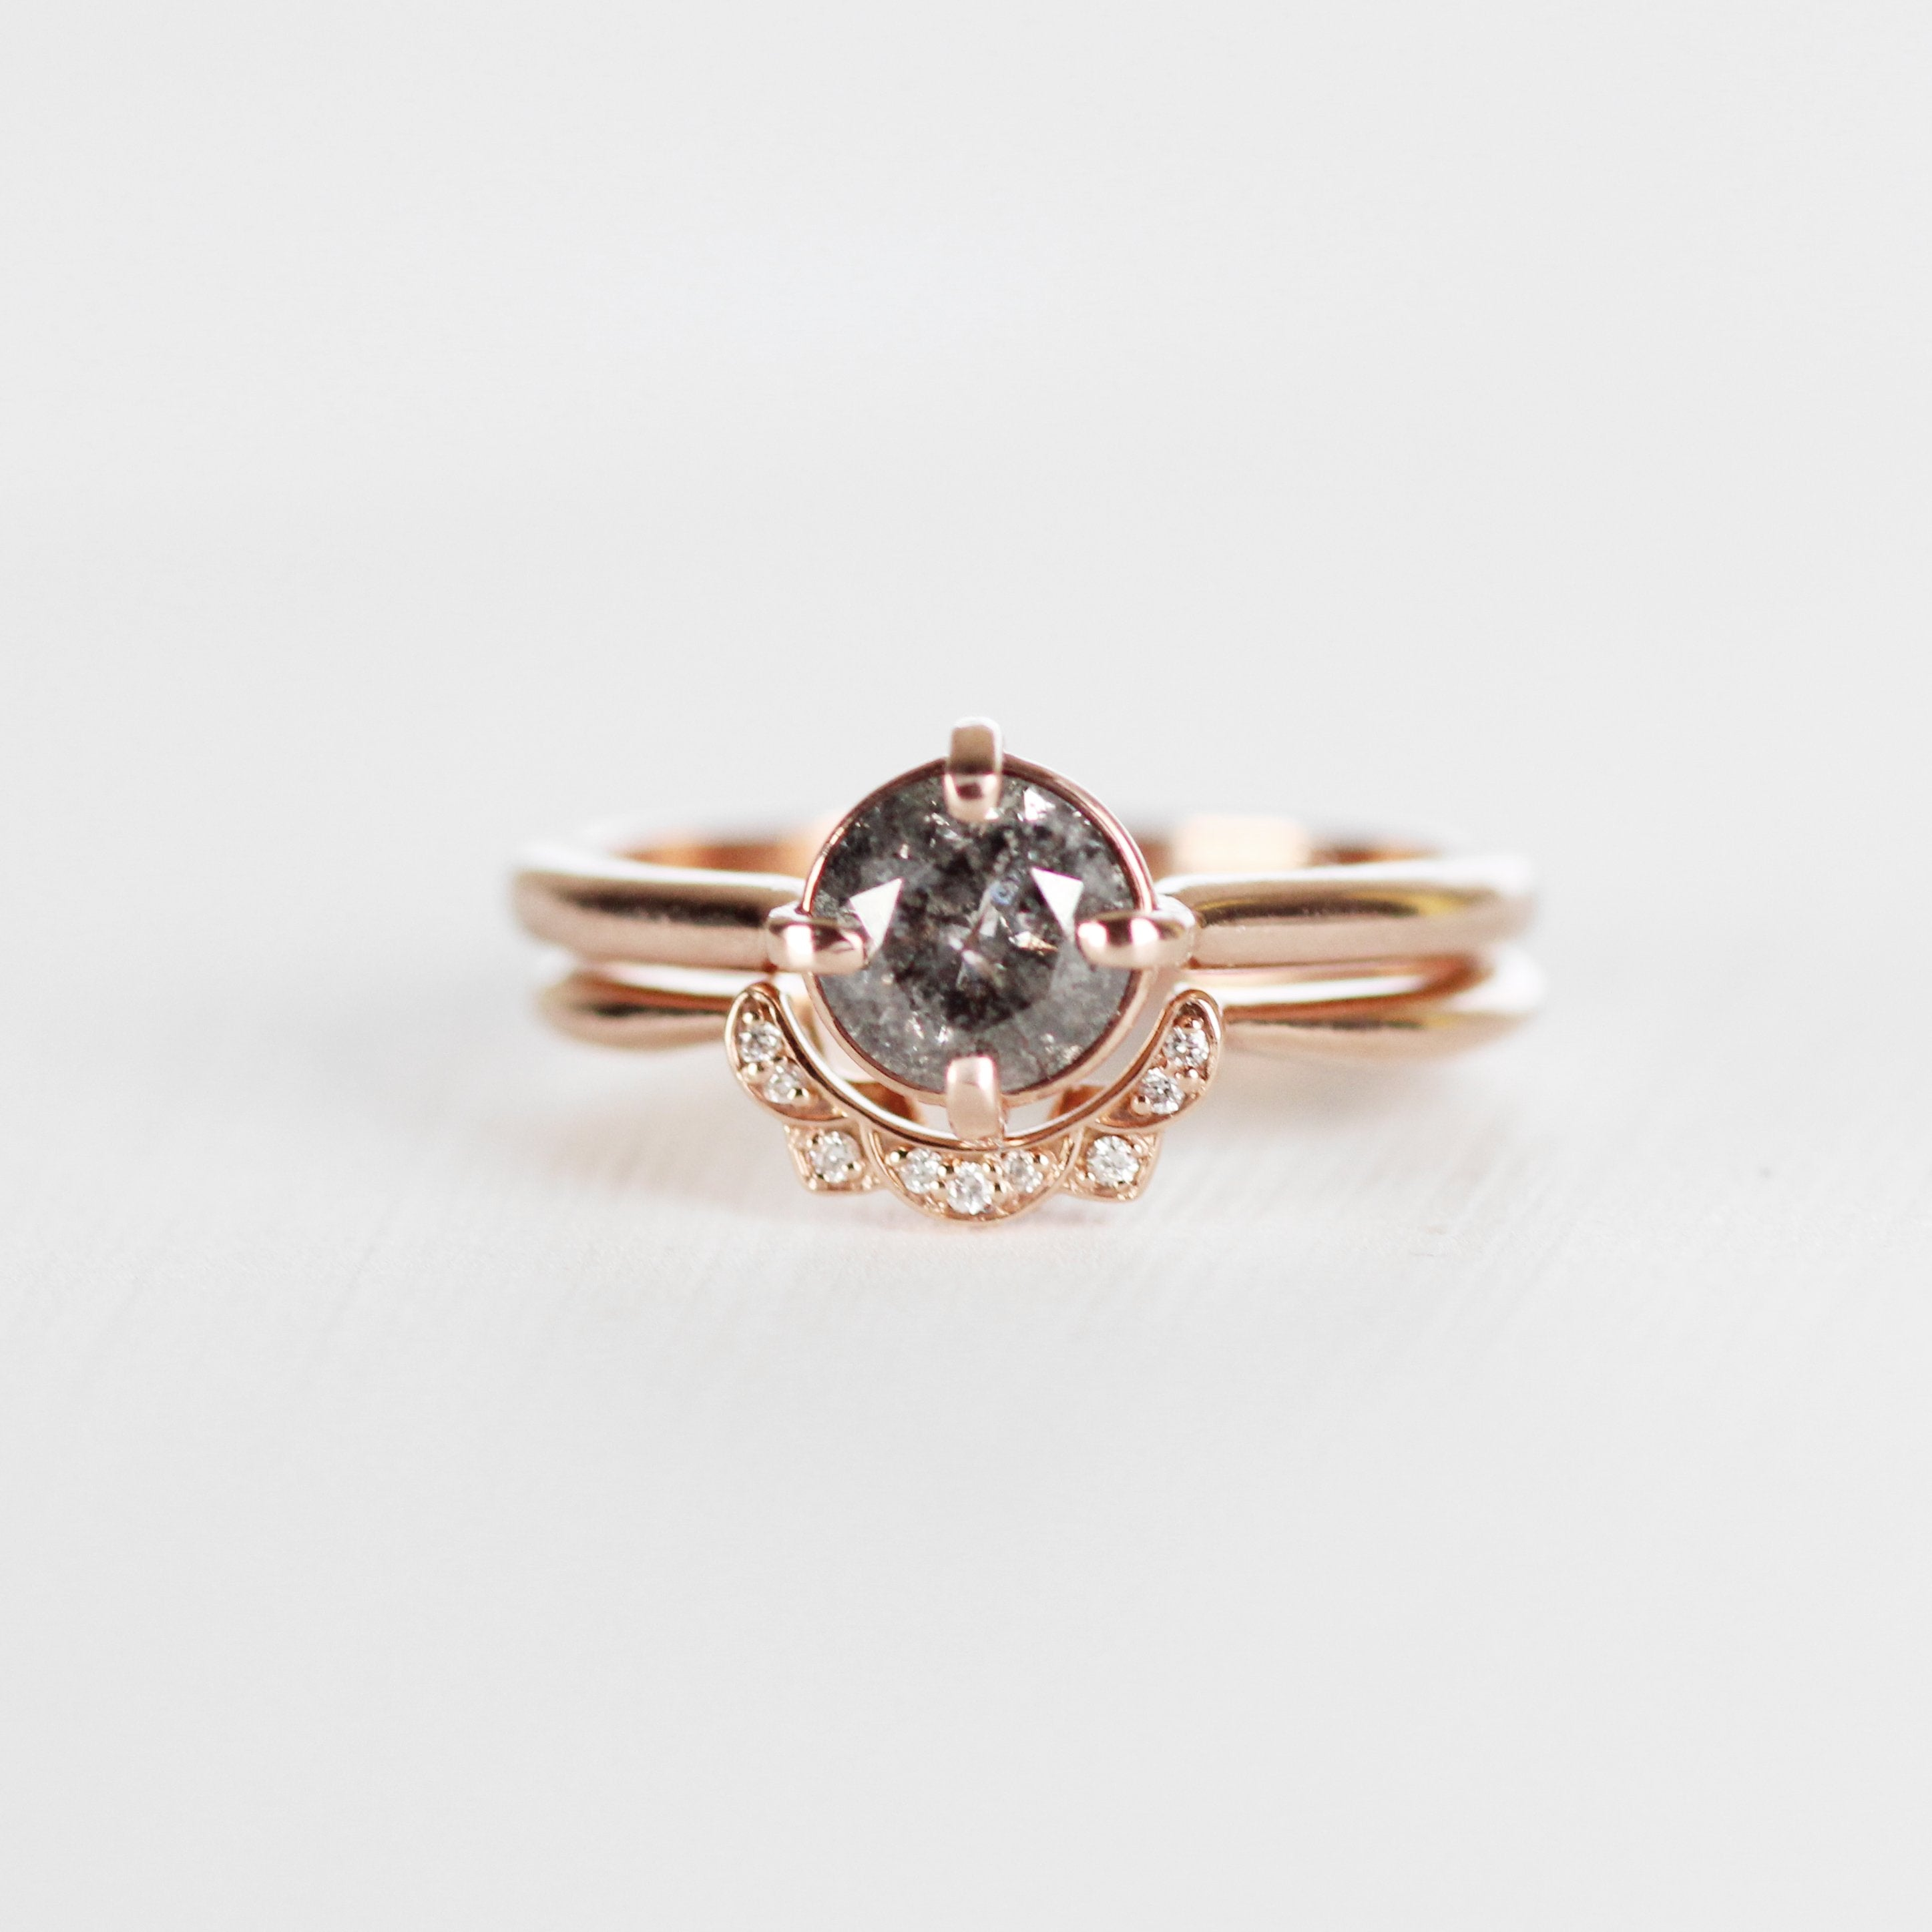 West wedding band - vintage inspired diamond contour band - 14k gold of choice - Midwinter Co. Alternative Bridal Rings and Modern Fine Jewelry